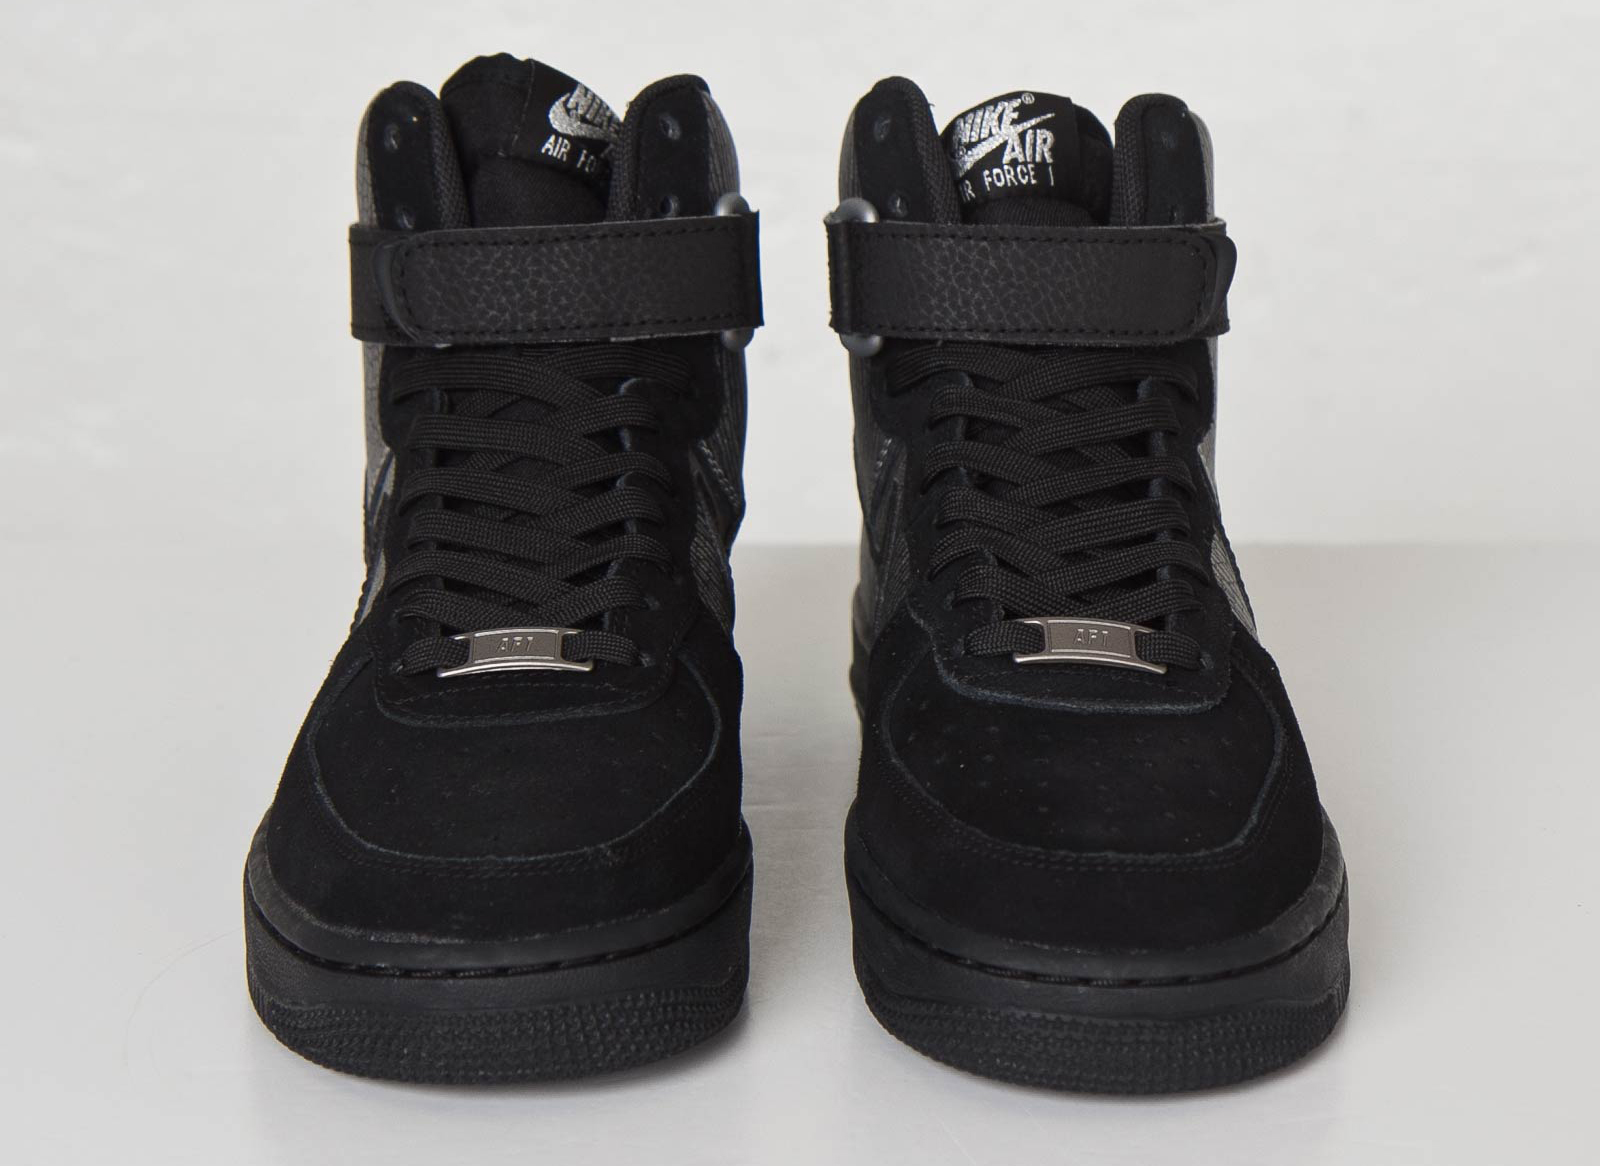 pics of kyrie irving shoes nike air force one high women